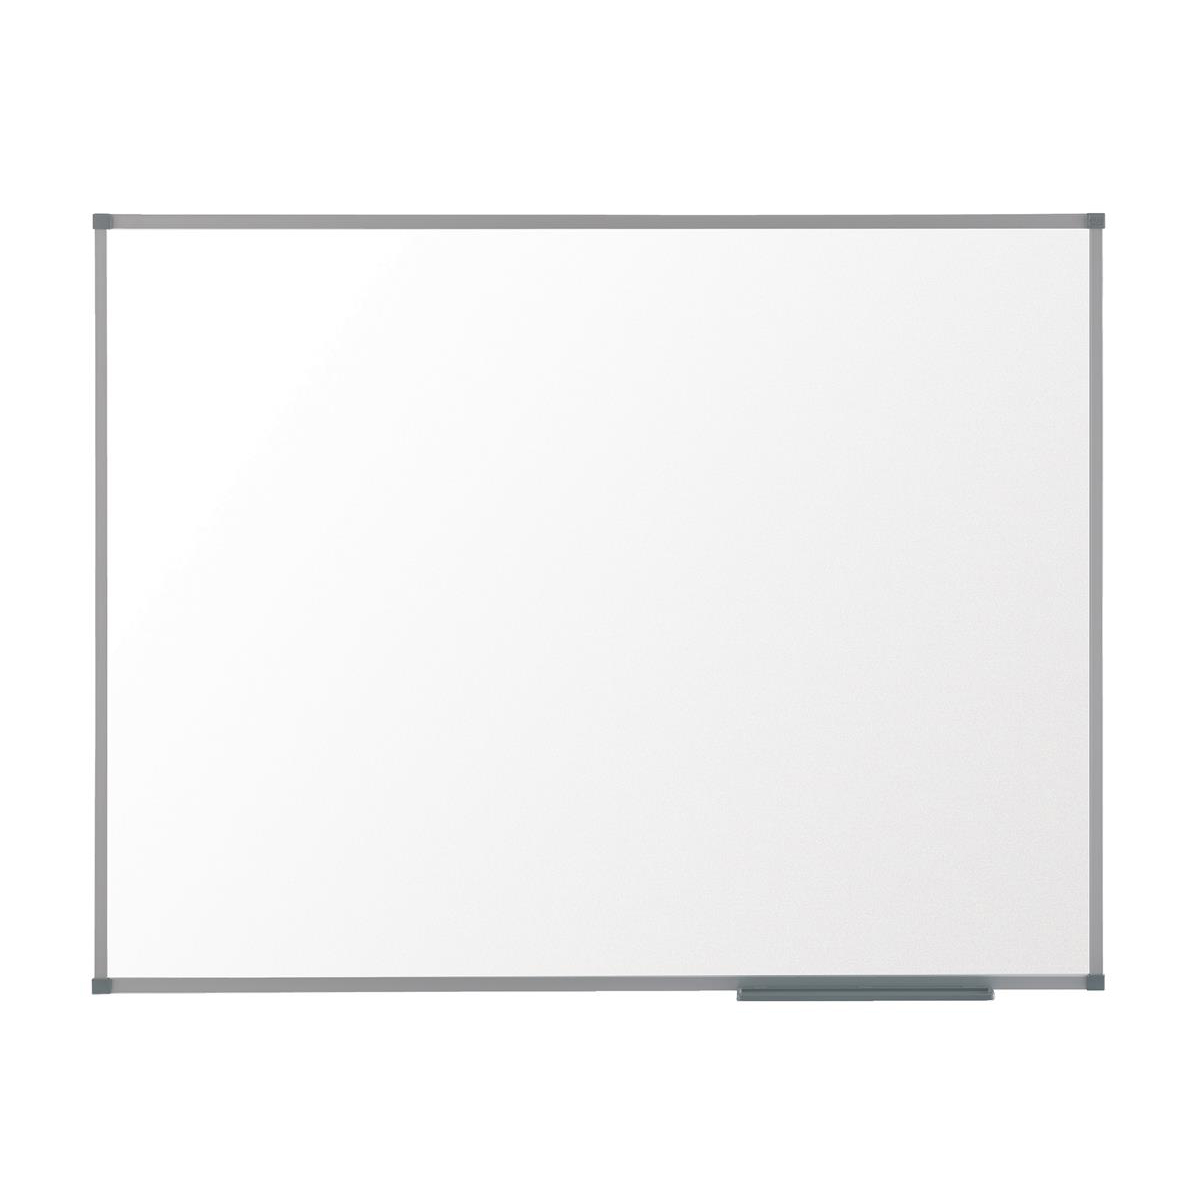 Magnetic Nobo Basic Steel Whiteboard Magnetic Fixings Included W1200xH900mm White Ref 1905211